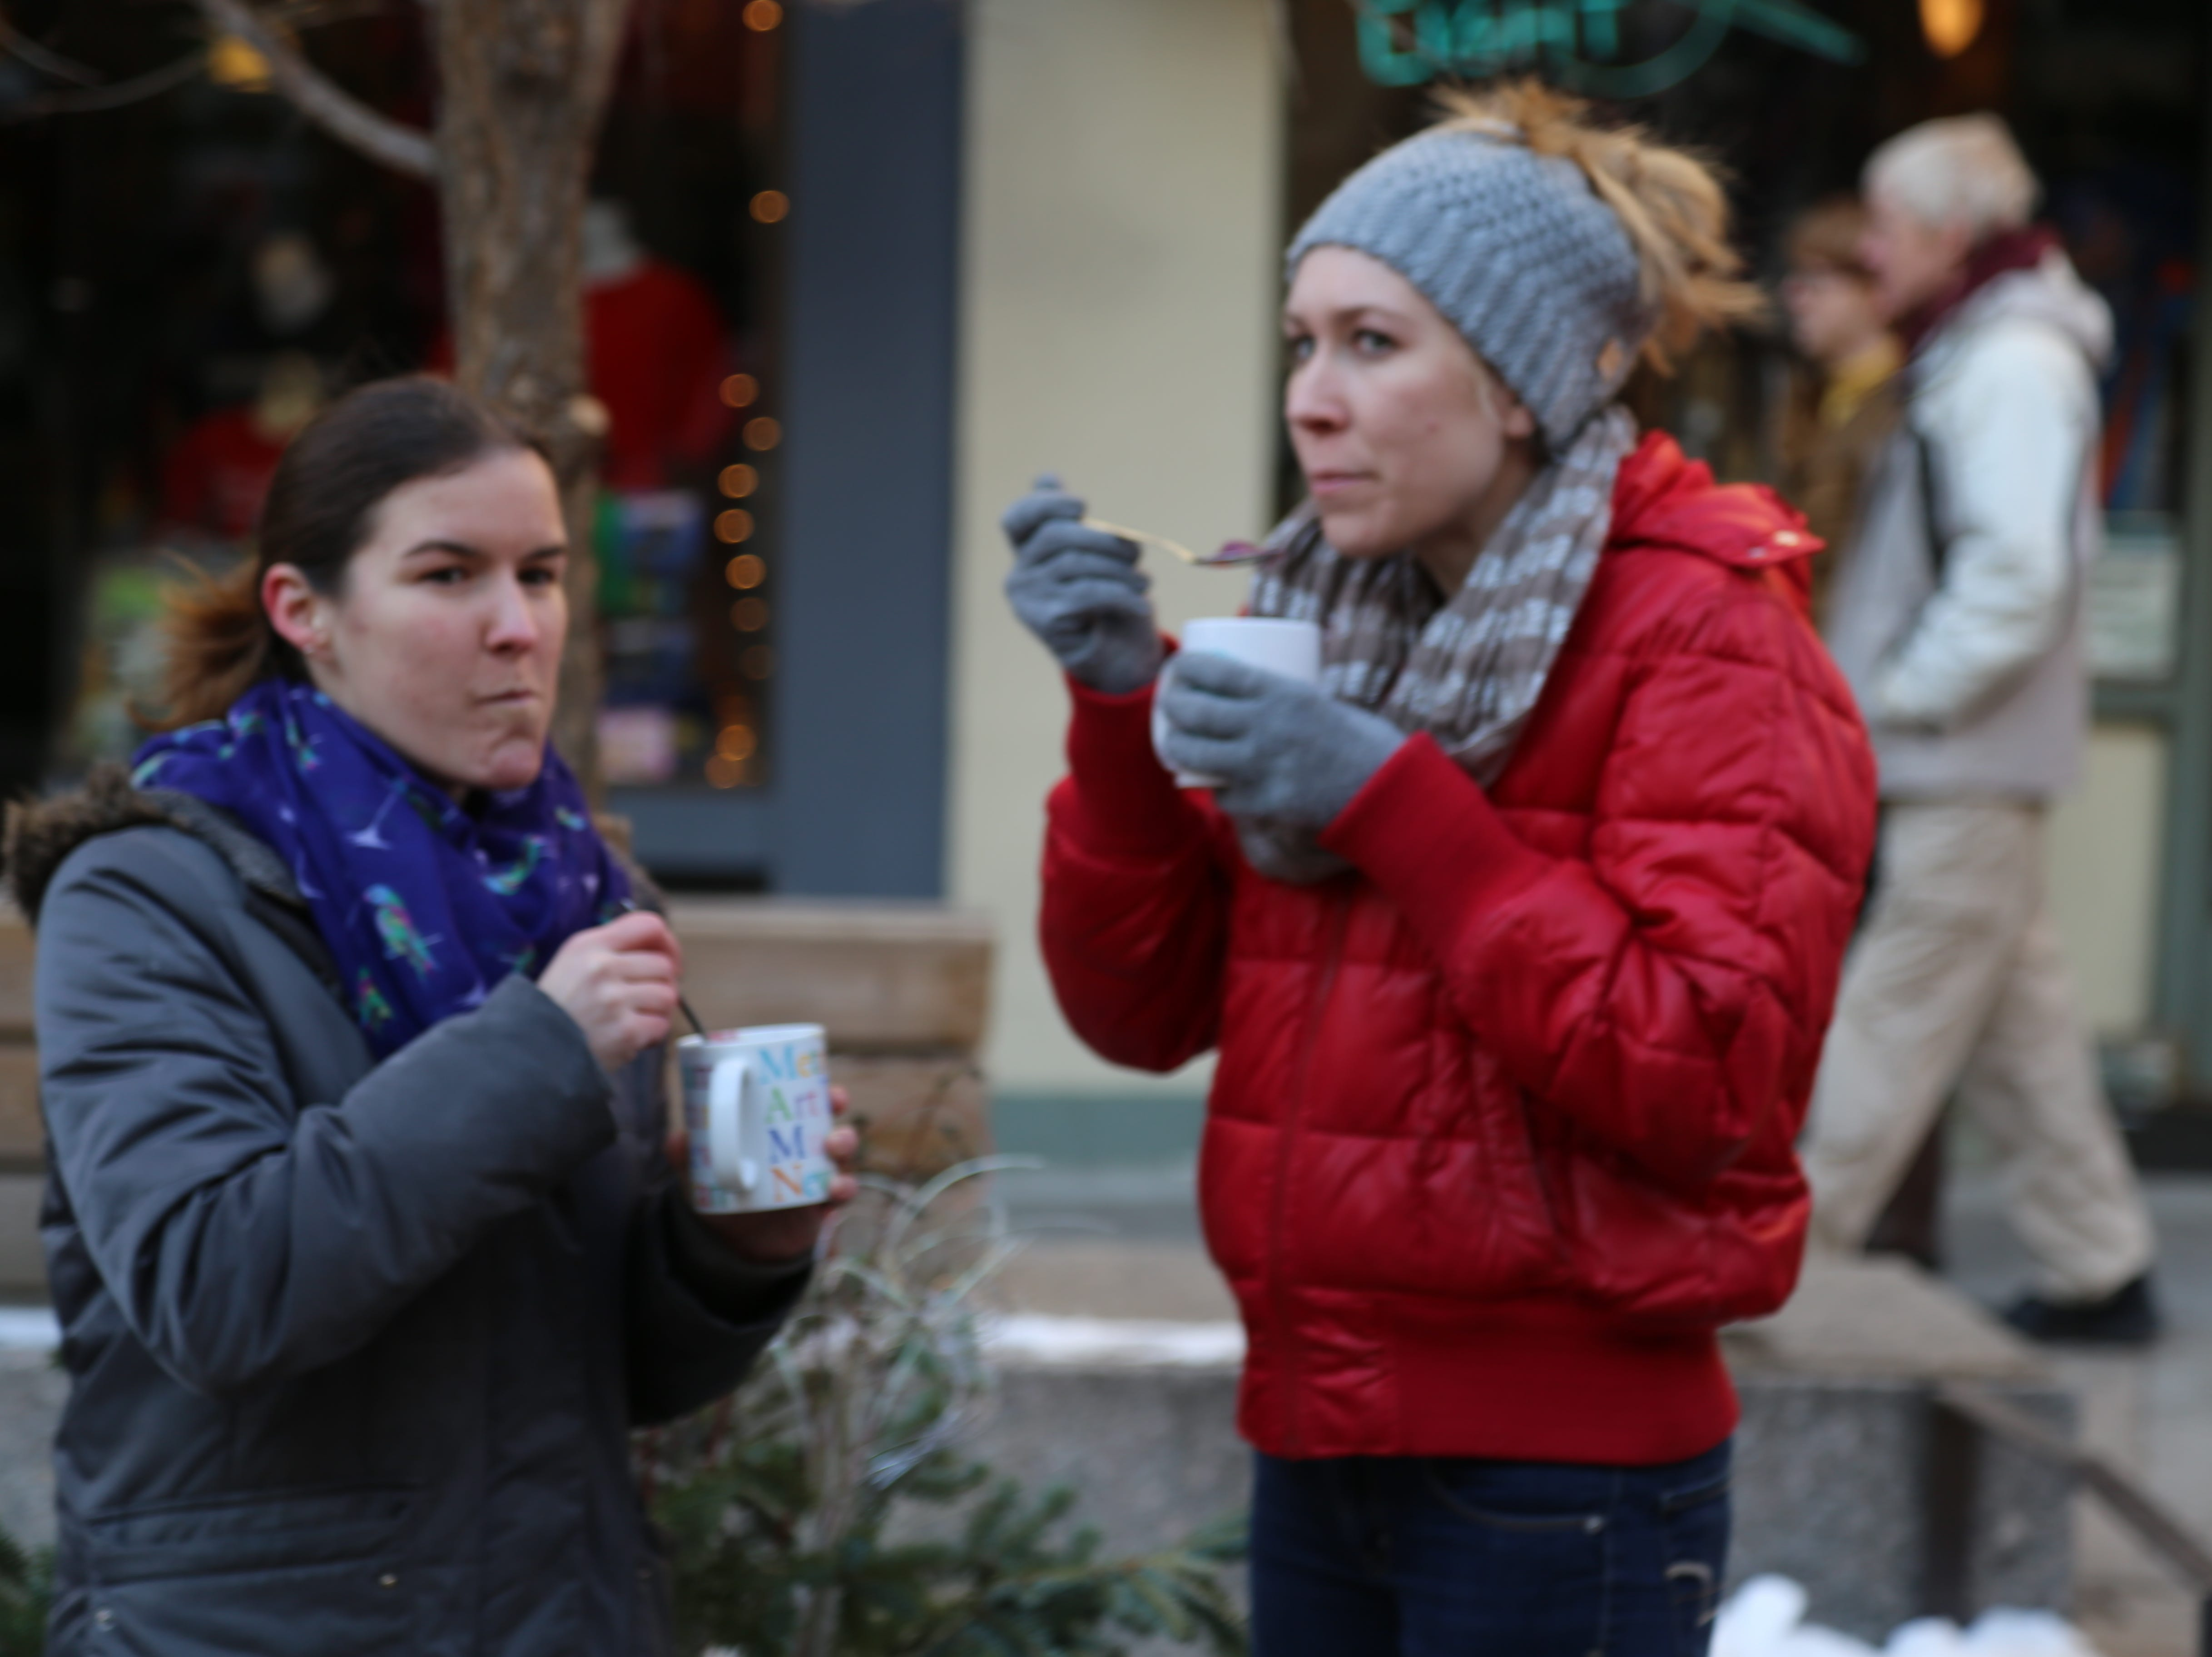 Residents and visitors ate chowder as they watched ice sculptors carving ice during the12th annual Ithaca Ice Fest.